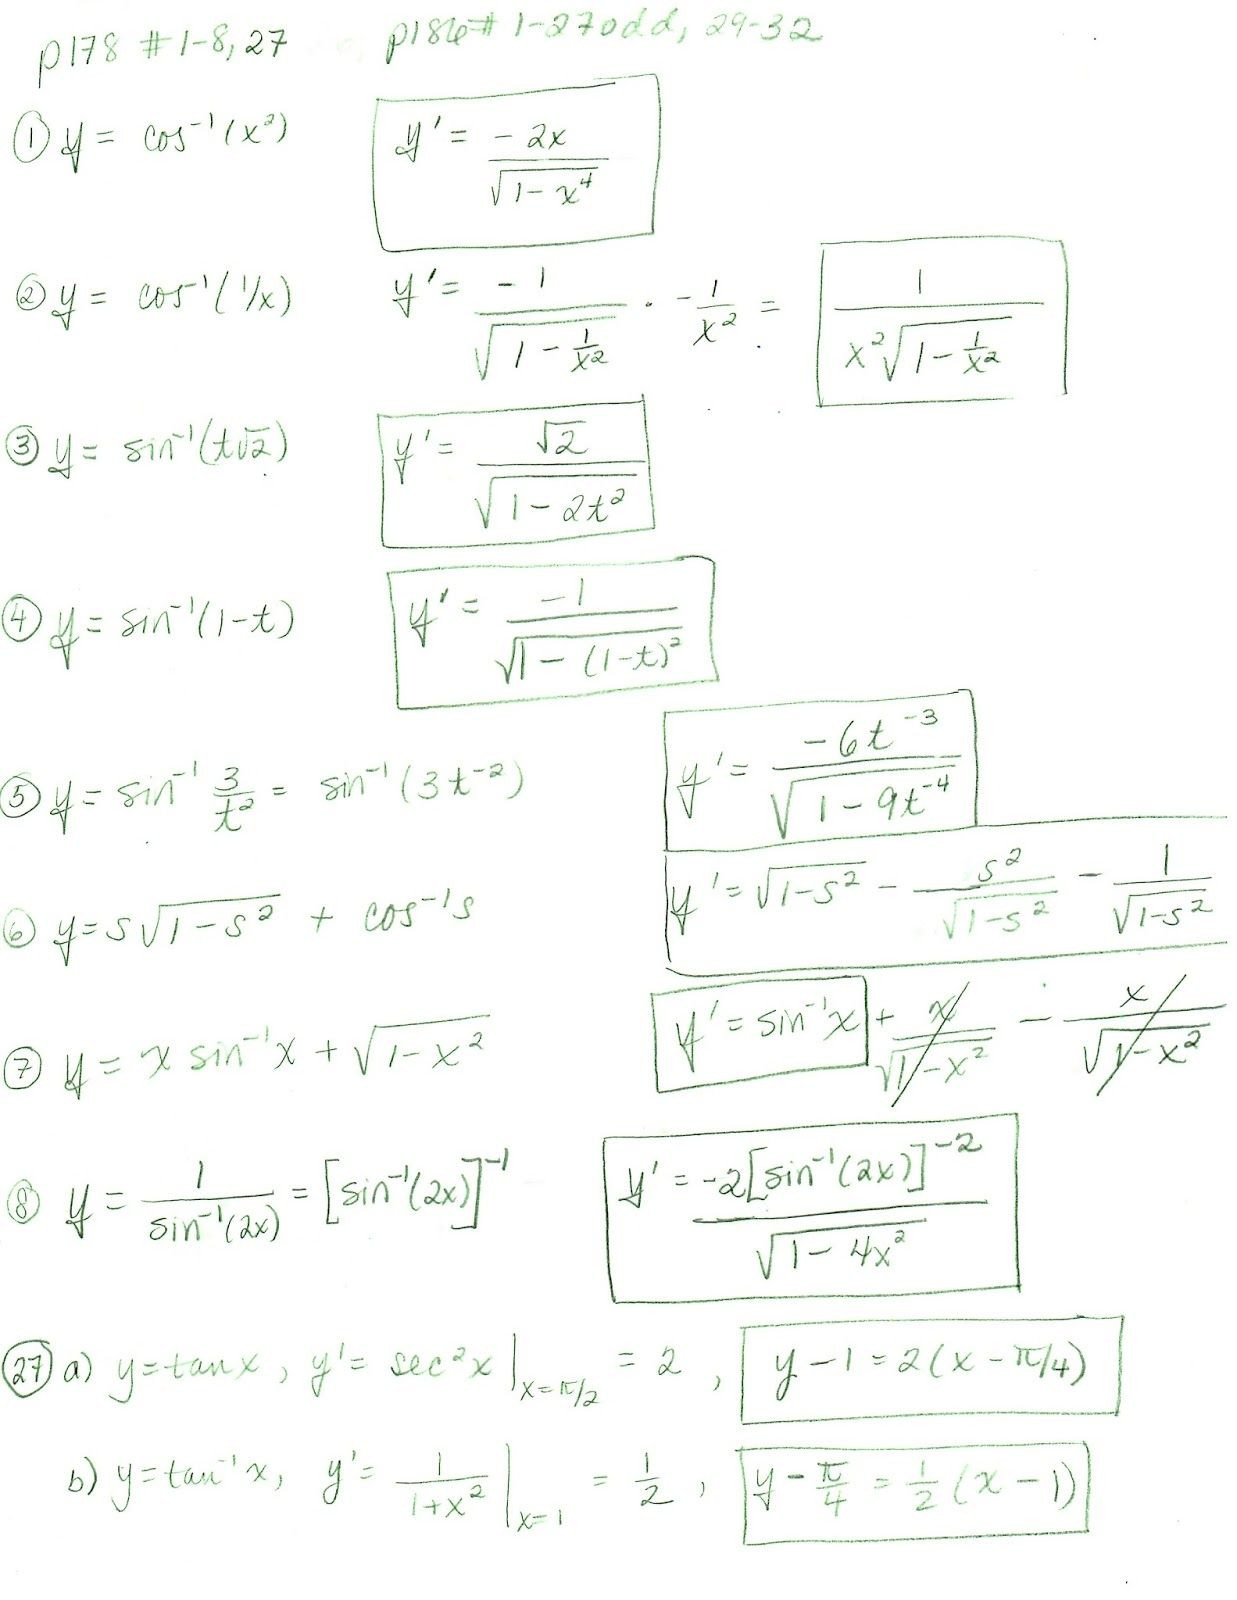 Graphing Exponential Functions Worksheet Answers 35 Clever Graphing Exponential Functions Worksheet Design